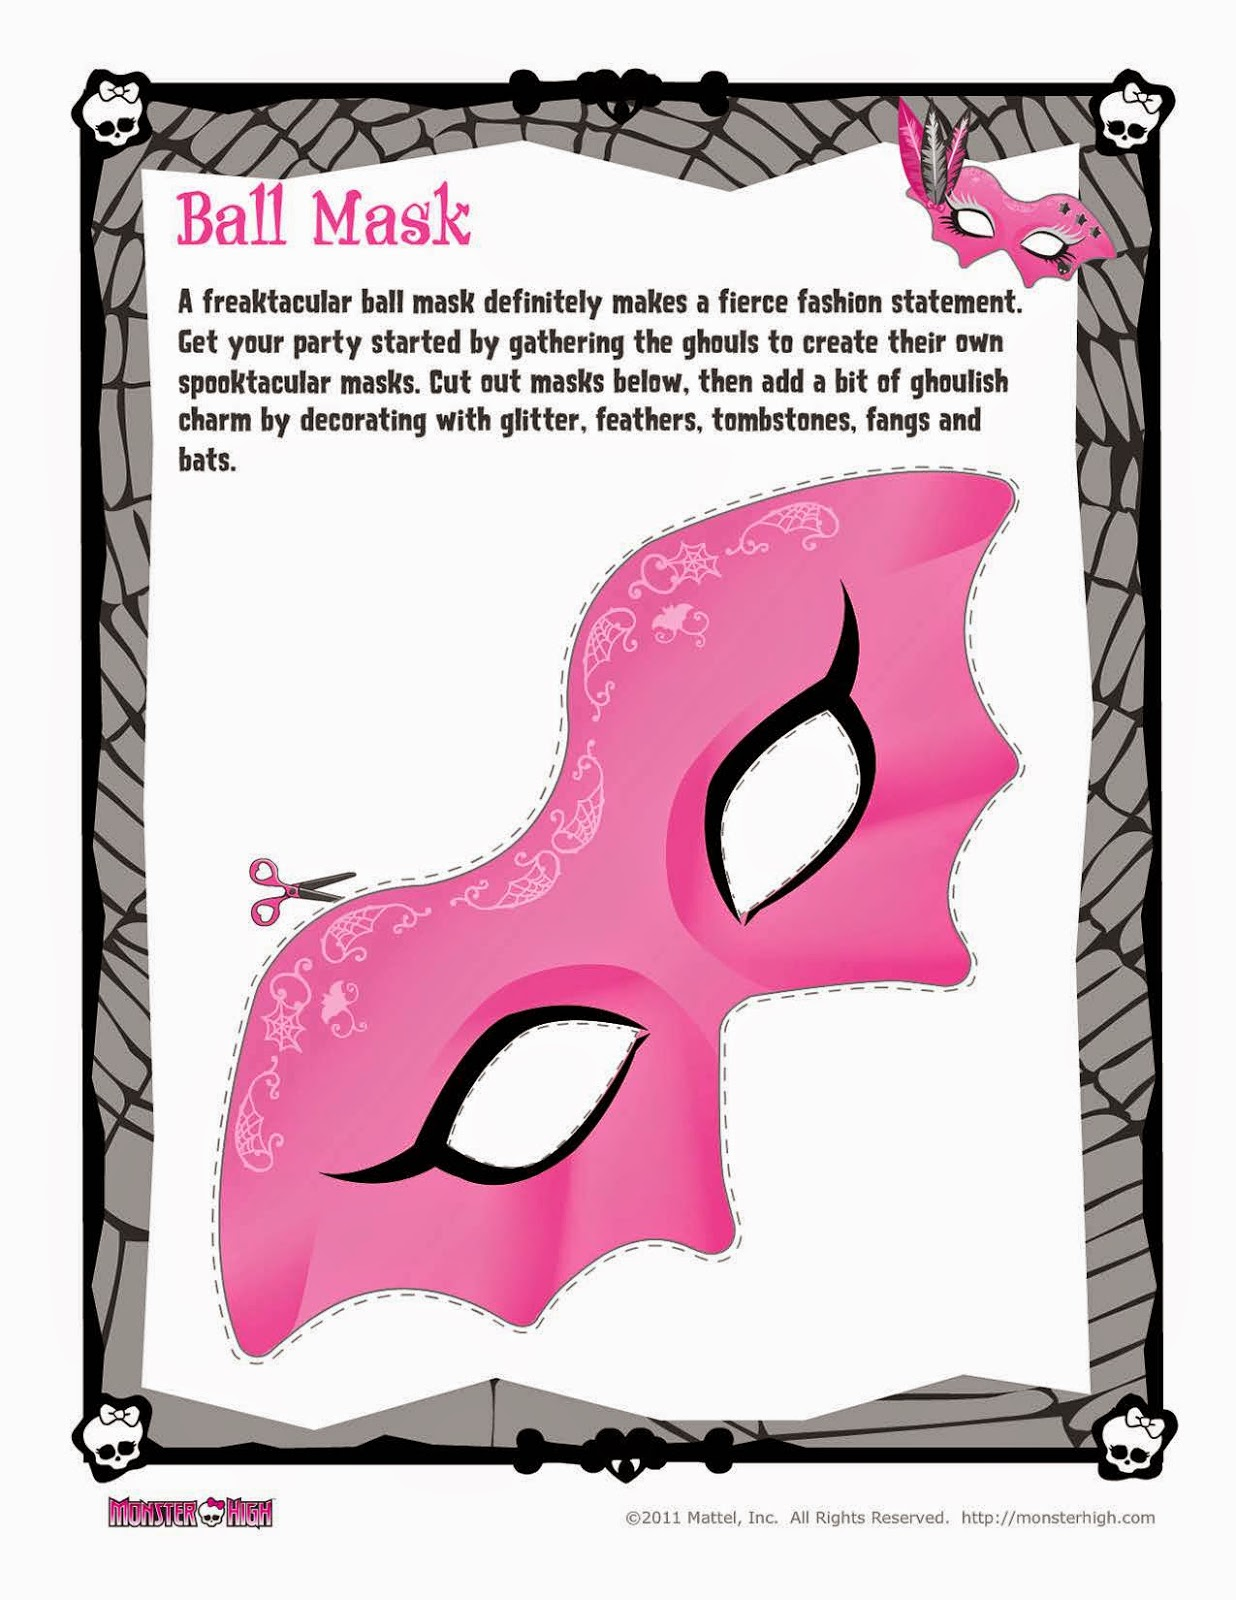 Best Quality Sheets On Amazon Monster High Free Printable Ball Mask Oh My Fiesta In